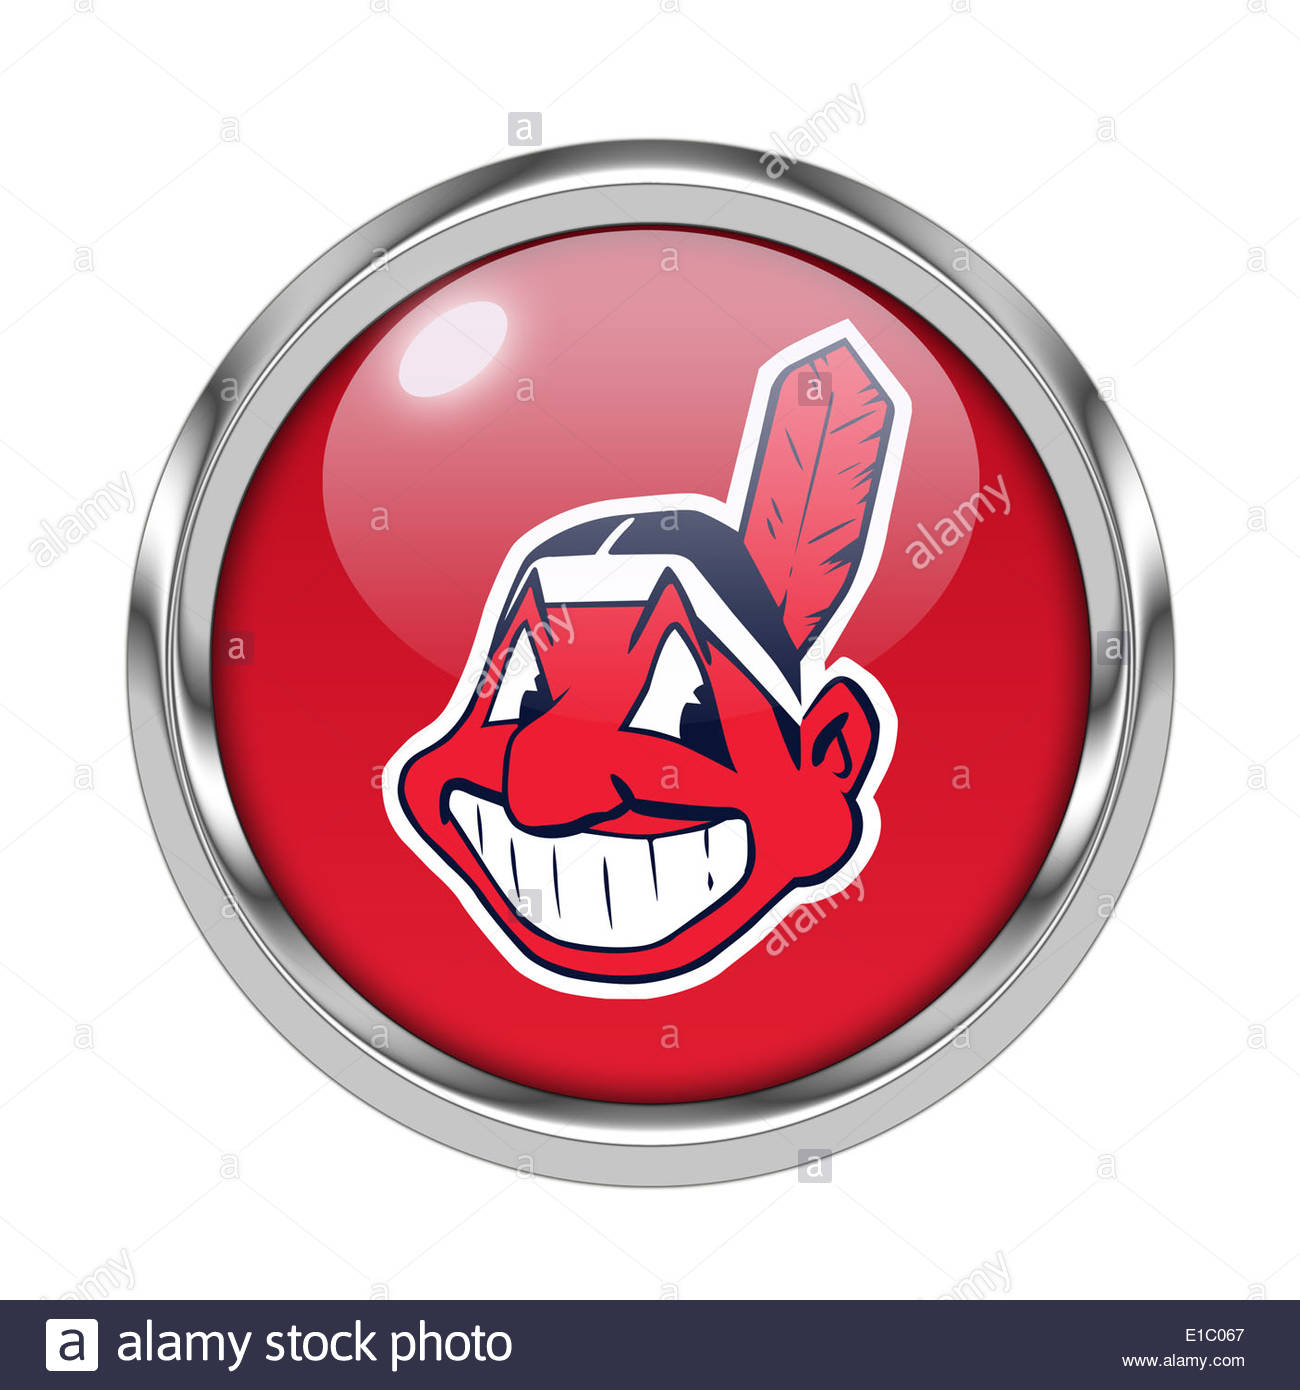 Cleveland indians icon logo isolated app button stock photo cleveland indians icon logo isolated app button biocorpaavc Choice Image